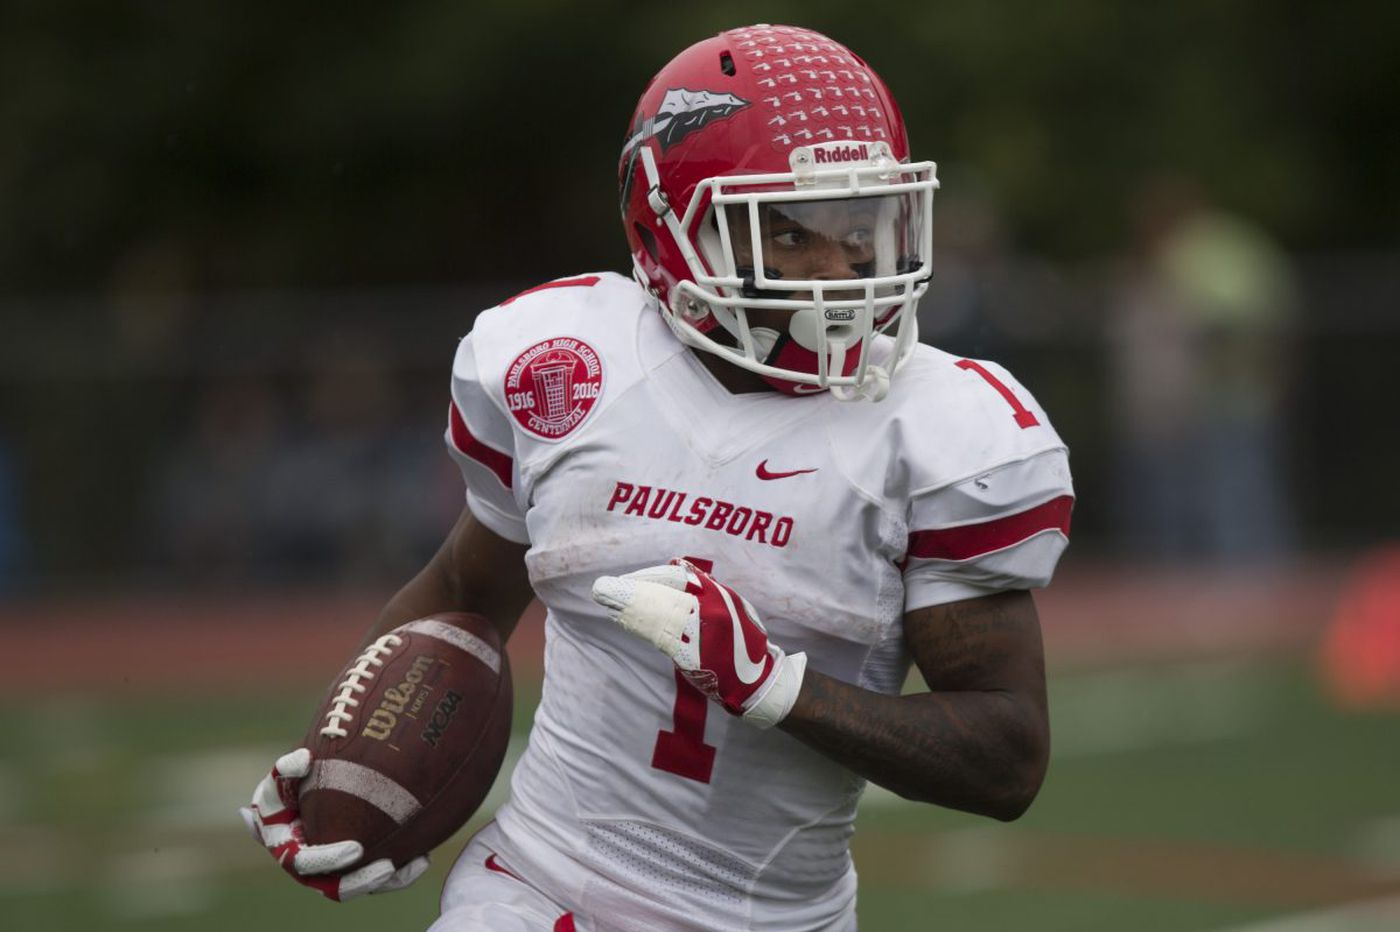 Holloway leads Paulsboro over Salem in Group 1 semifinal